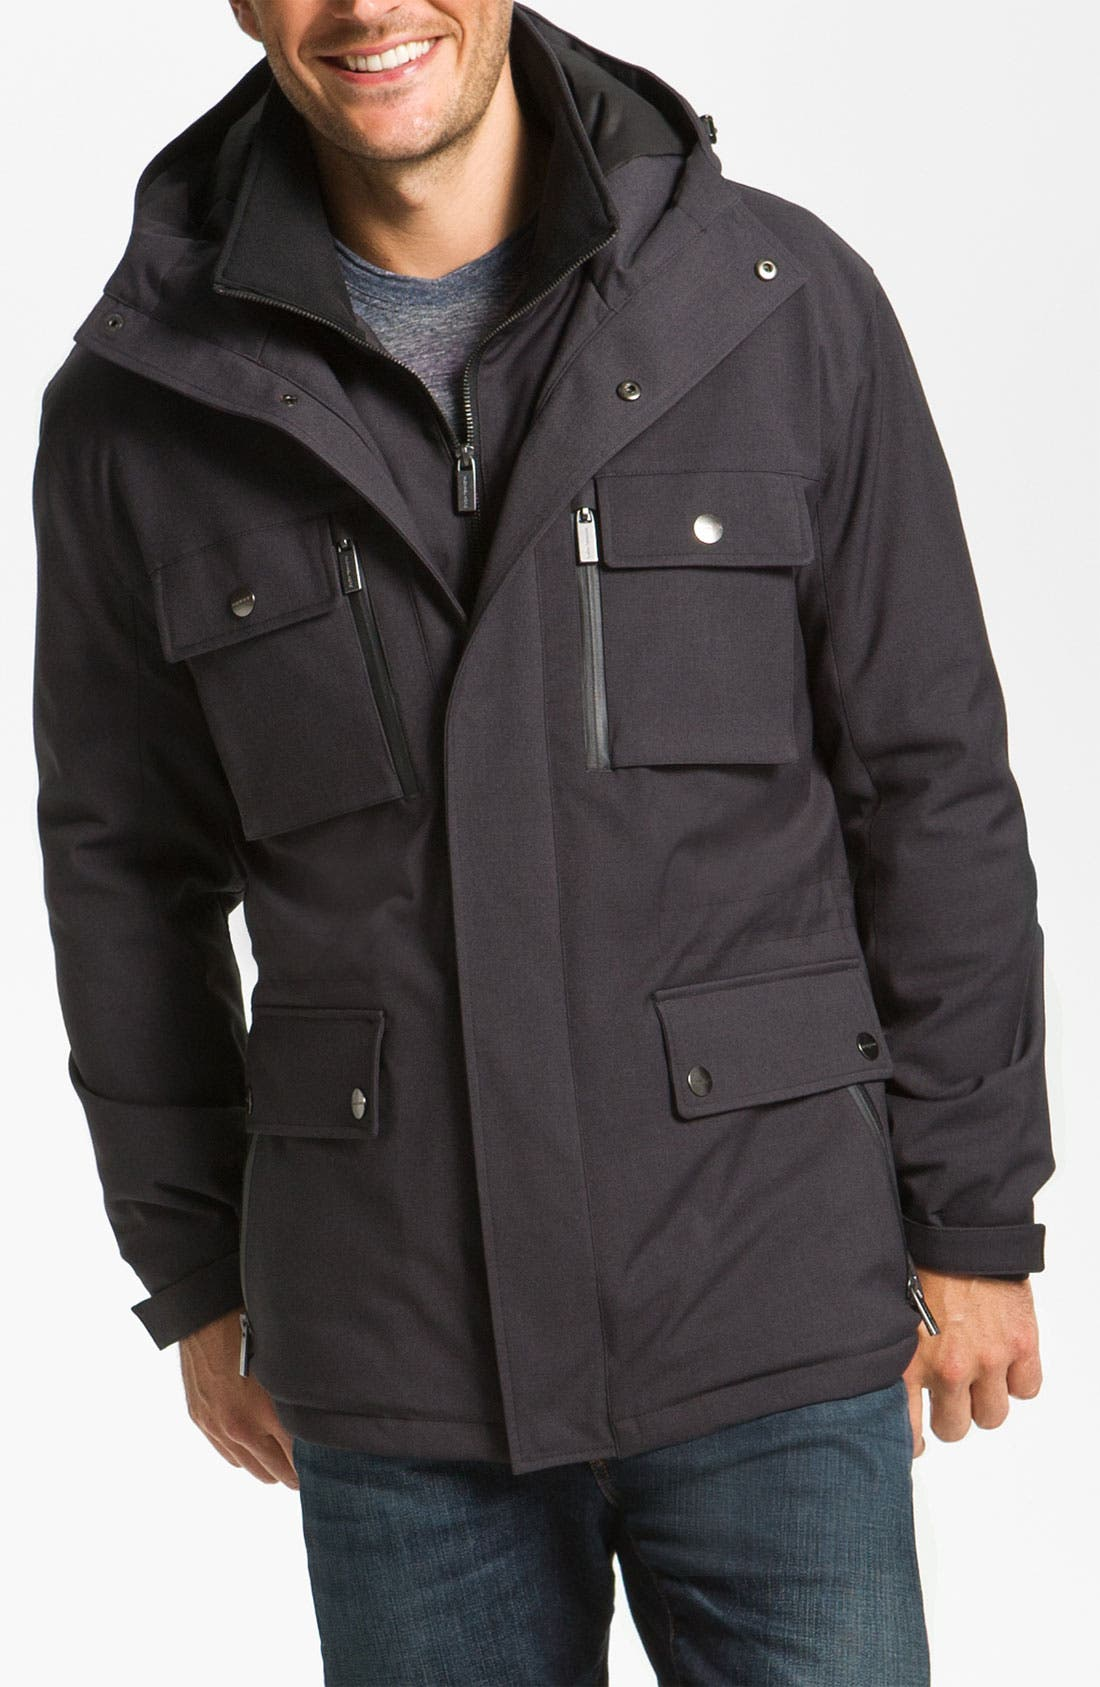 Alternate Image 1 Selected - Michael Kors 'Concord' Twill Parka